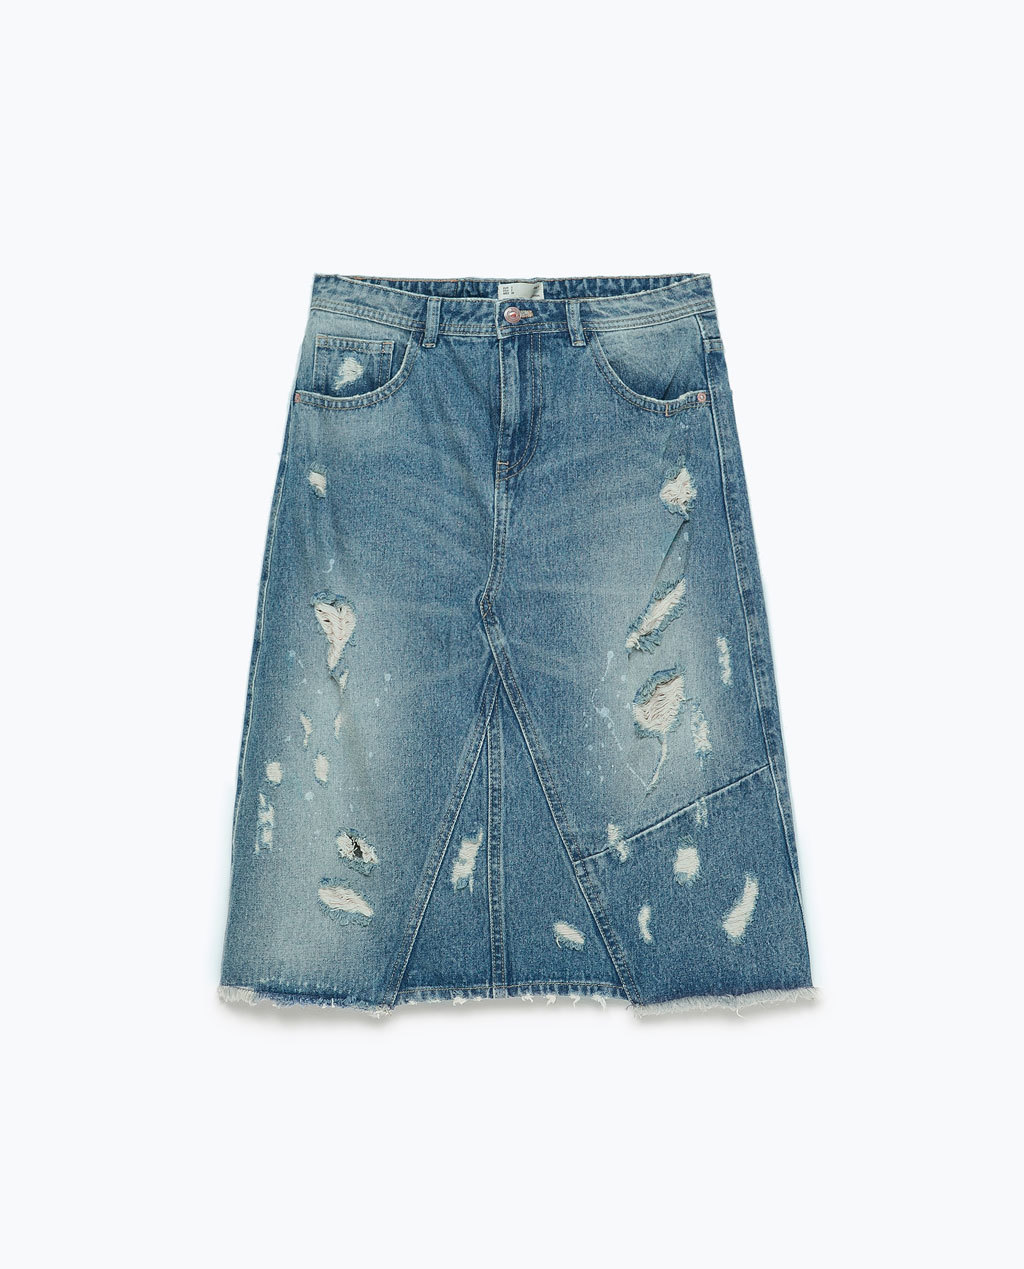 Distressed Denim Pencil Skirt - length: below the knee; pattern: plain; waist: mid/regular rise; predominant colour: denim; occasions: casual; style: a-line; fibres: cotton - 100%; texture group: denim; fit: straight cut; pattern type: fabric; season: s/s 2015; wardrobe: basic